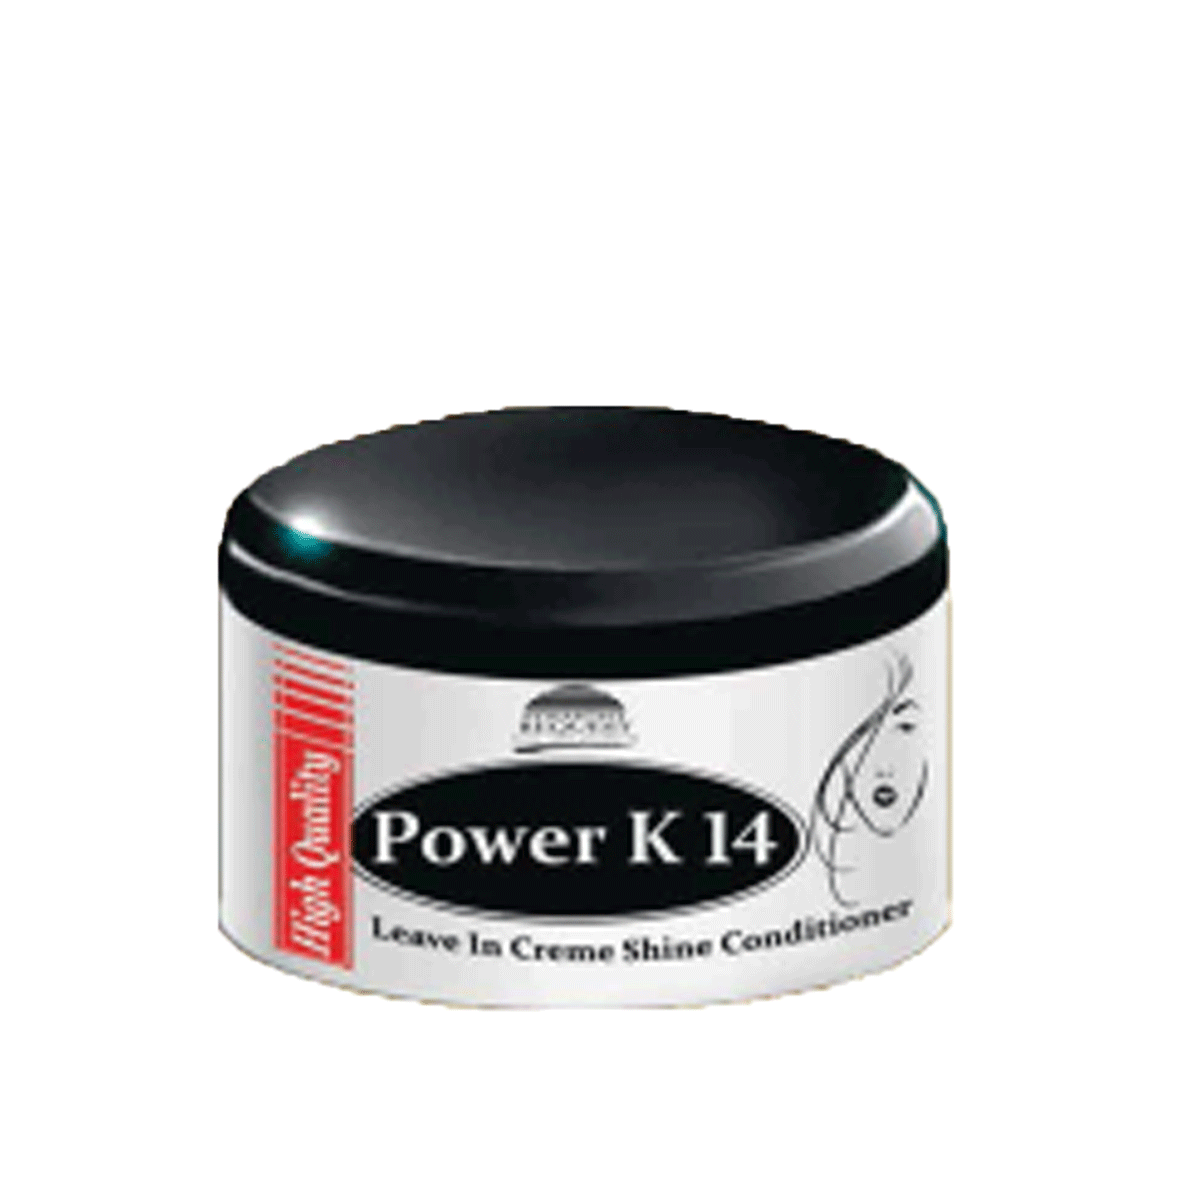 Power K14 Cream Moisturizer